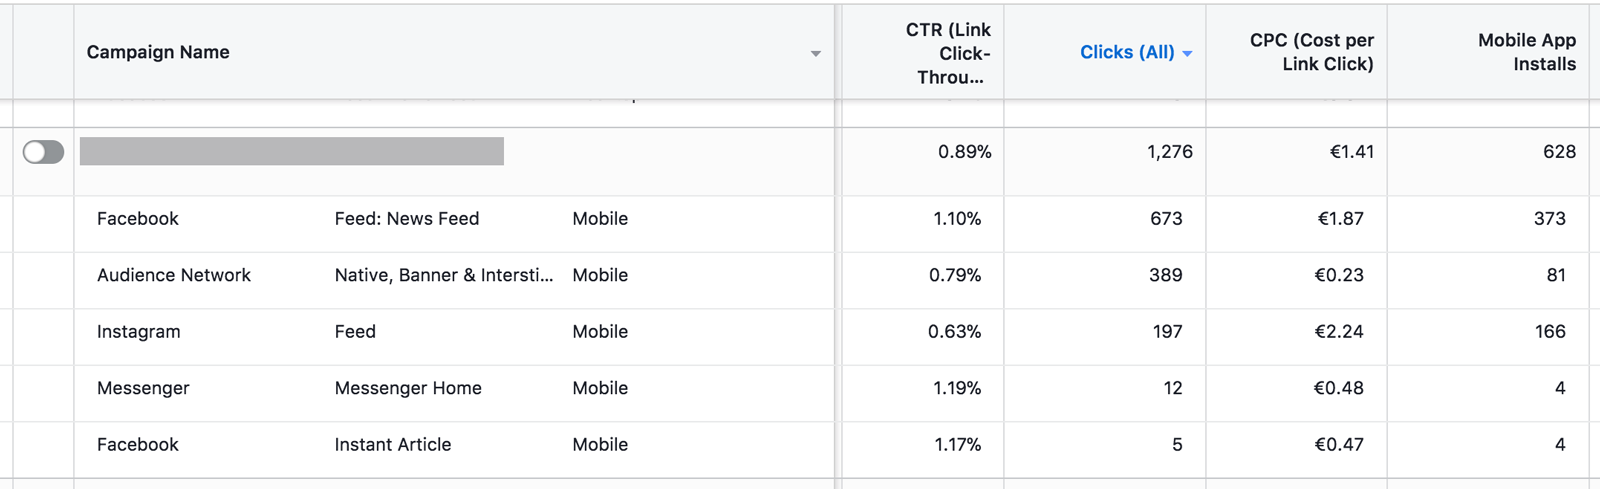 the number of clicks and mobile app installs of a campaign